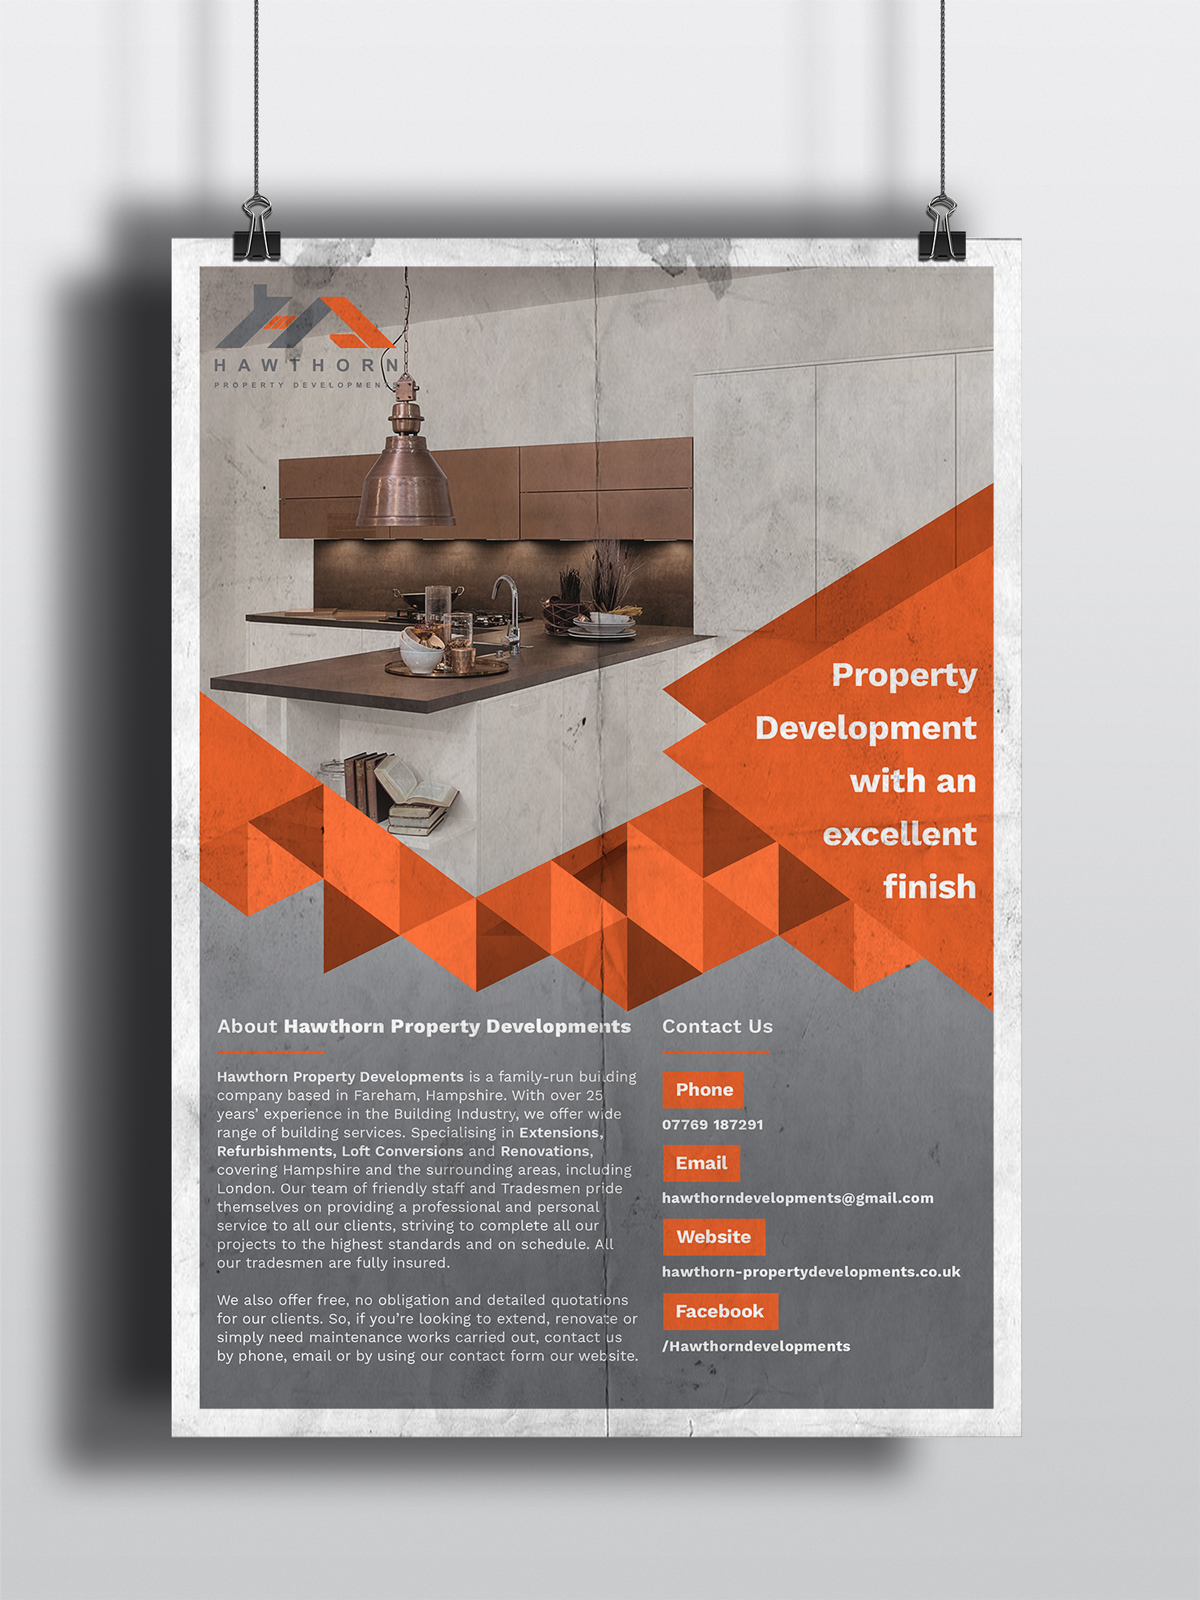 Property development flyer design Portsmouth, Hampshire